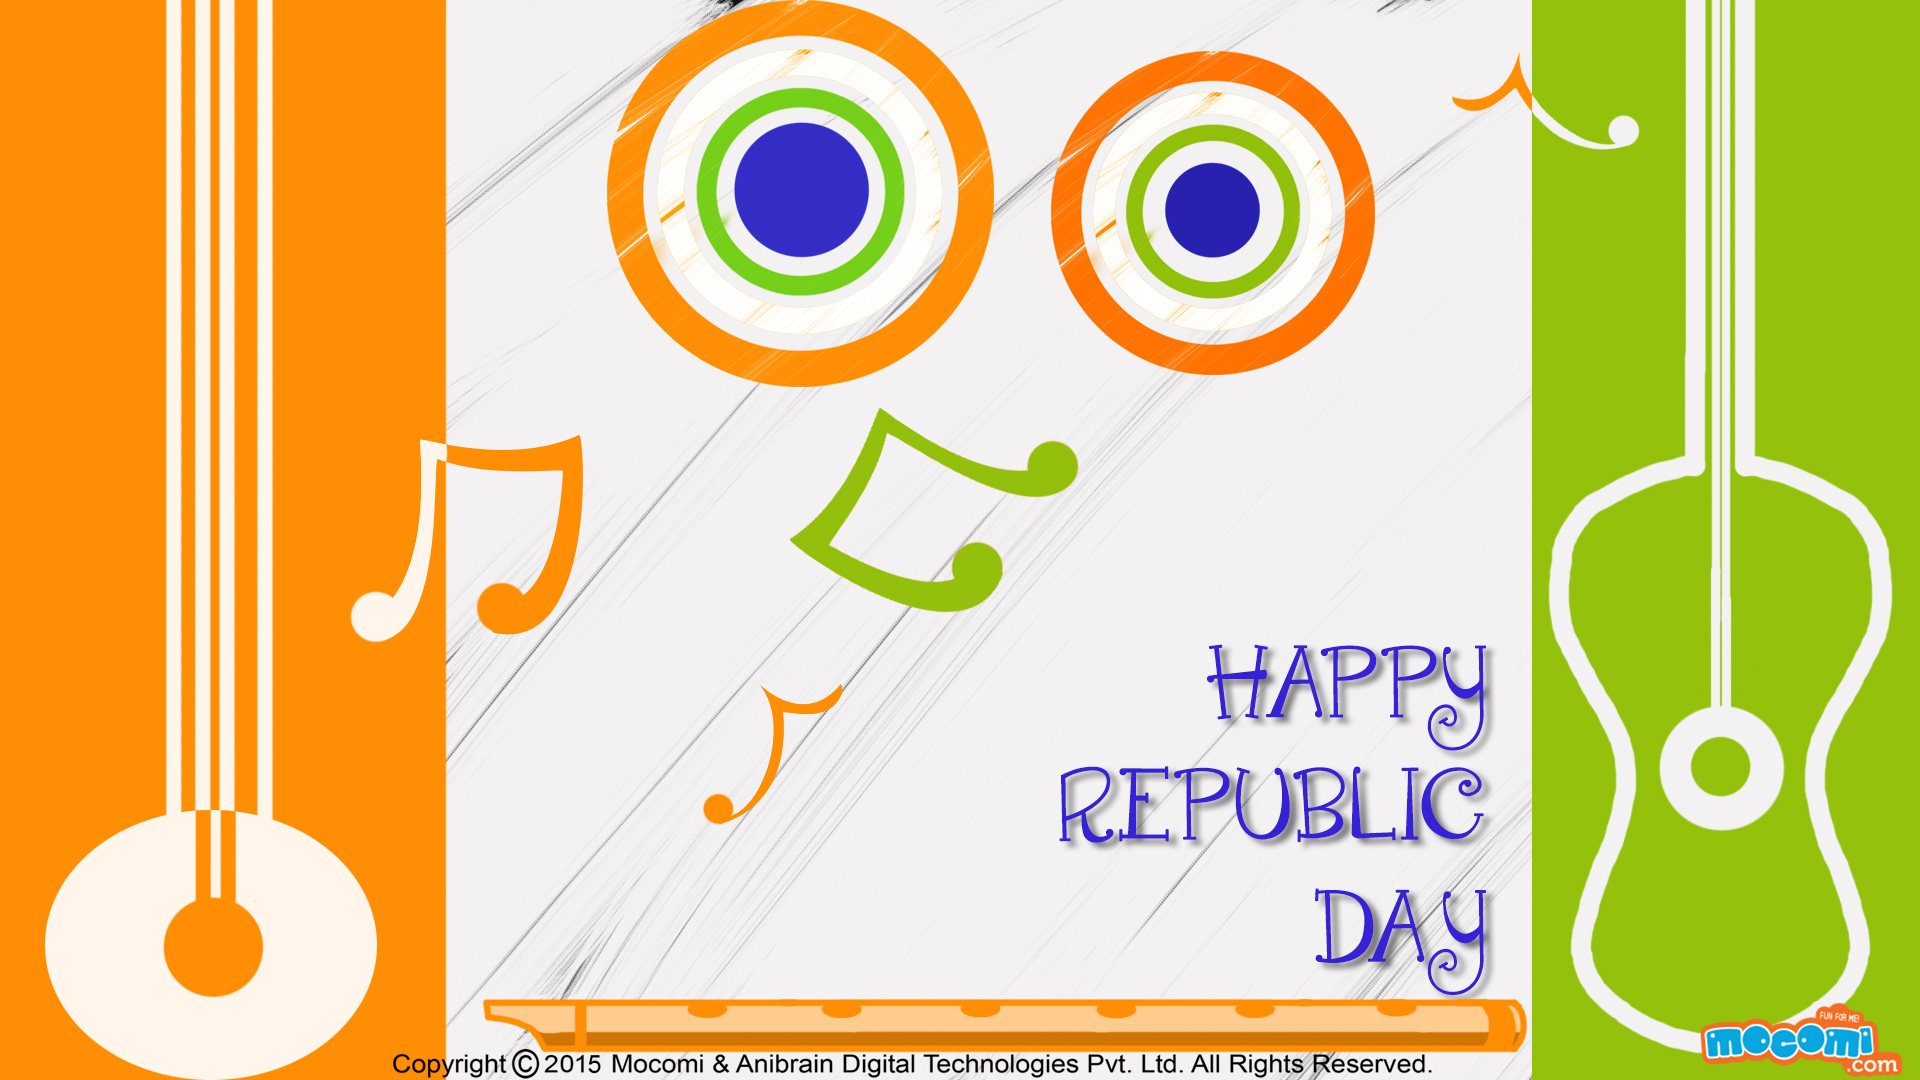 Happy Republic Day Wallpaper – 9